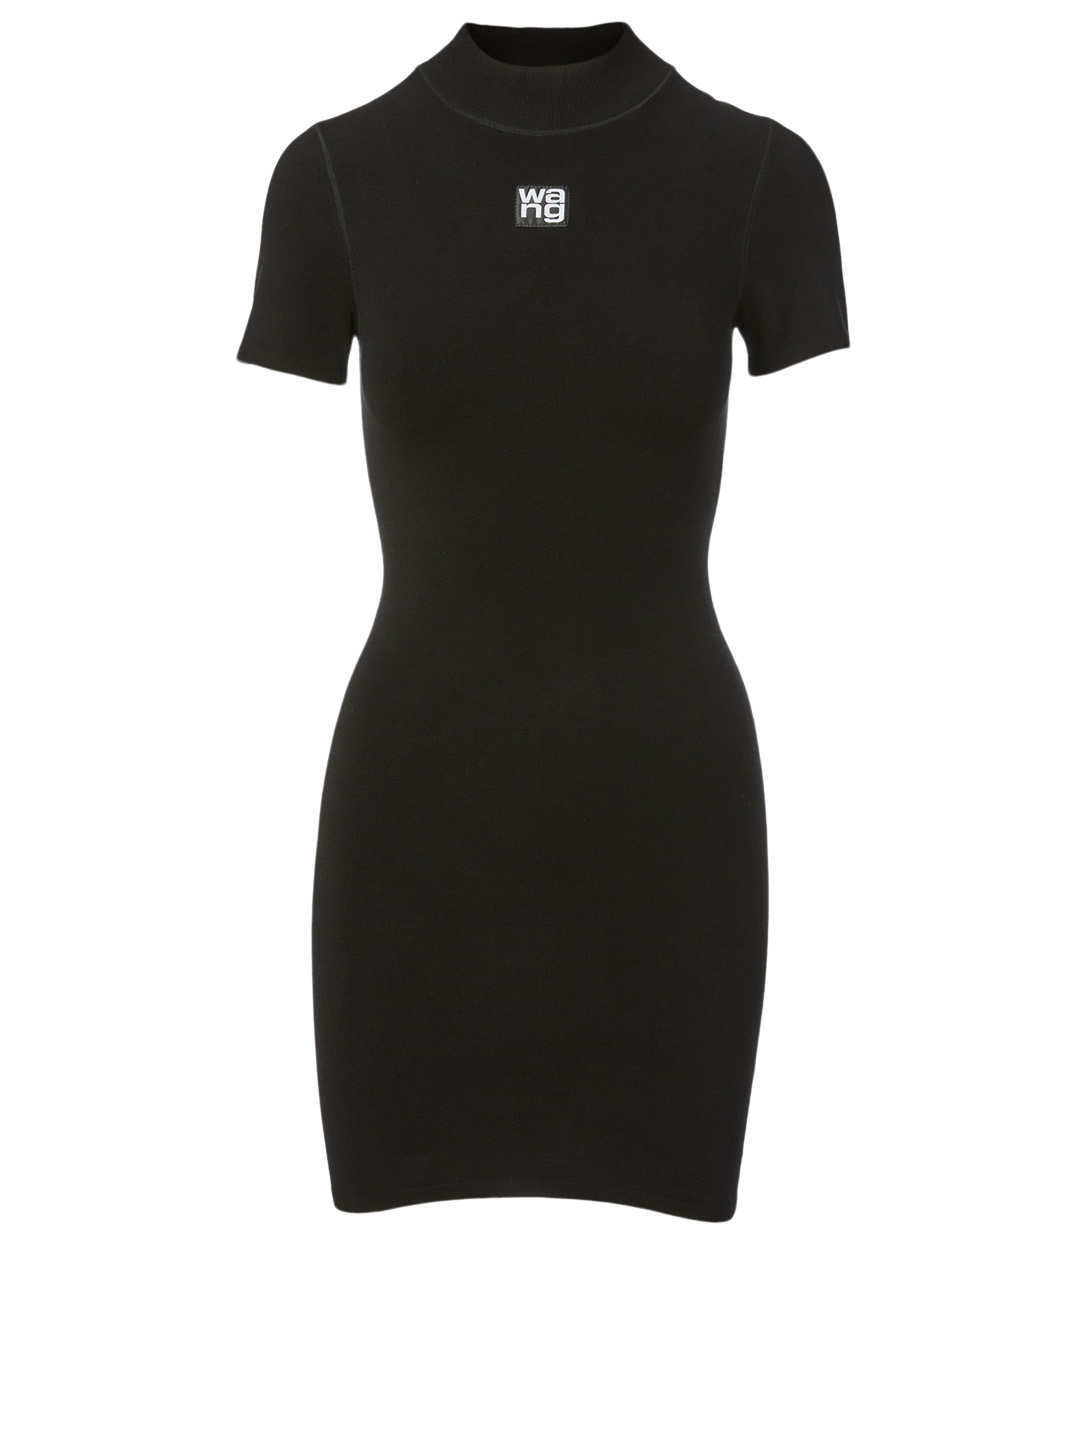 ALEXANDERWANG.T Bodycon T-Shirt Dress With Logo Women's Black